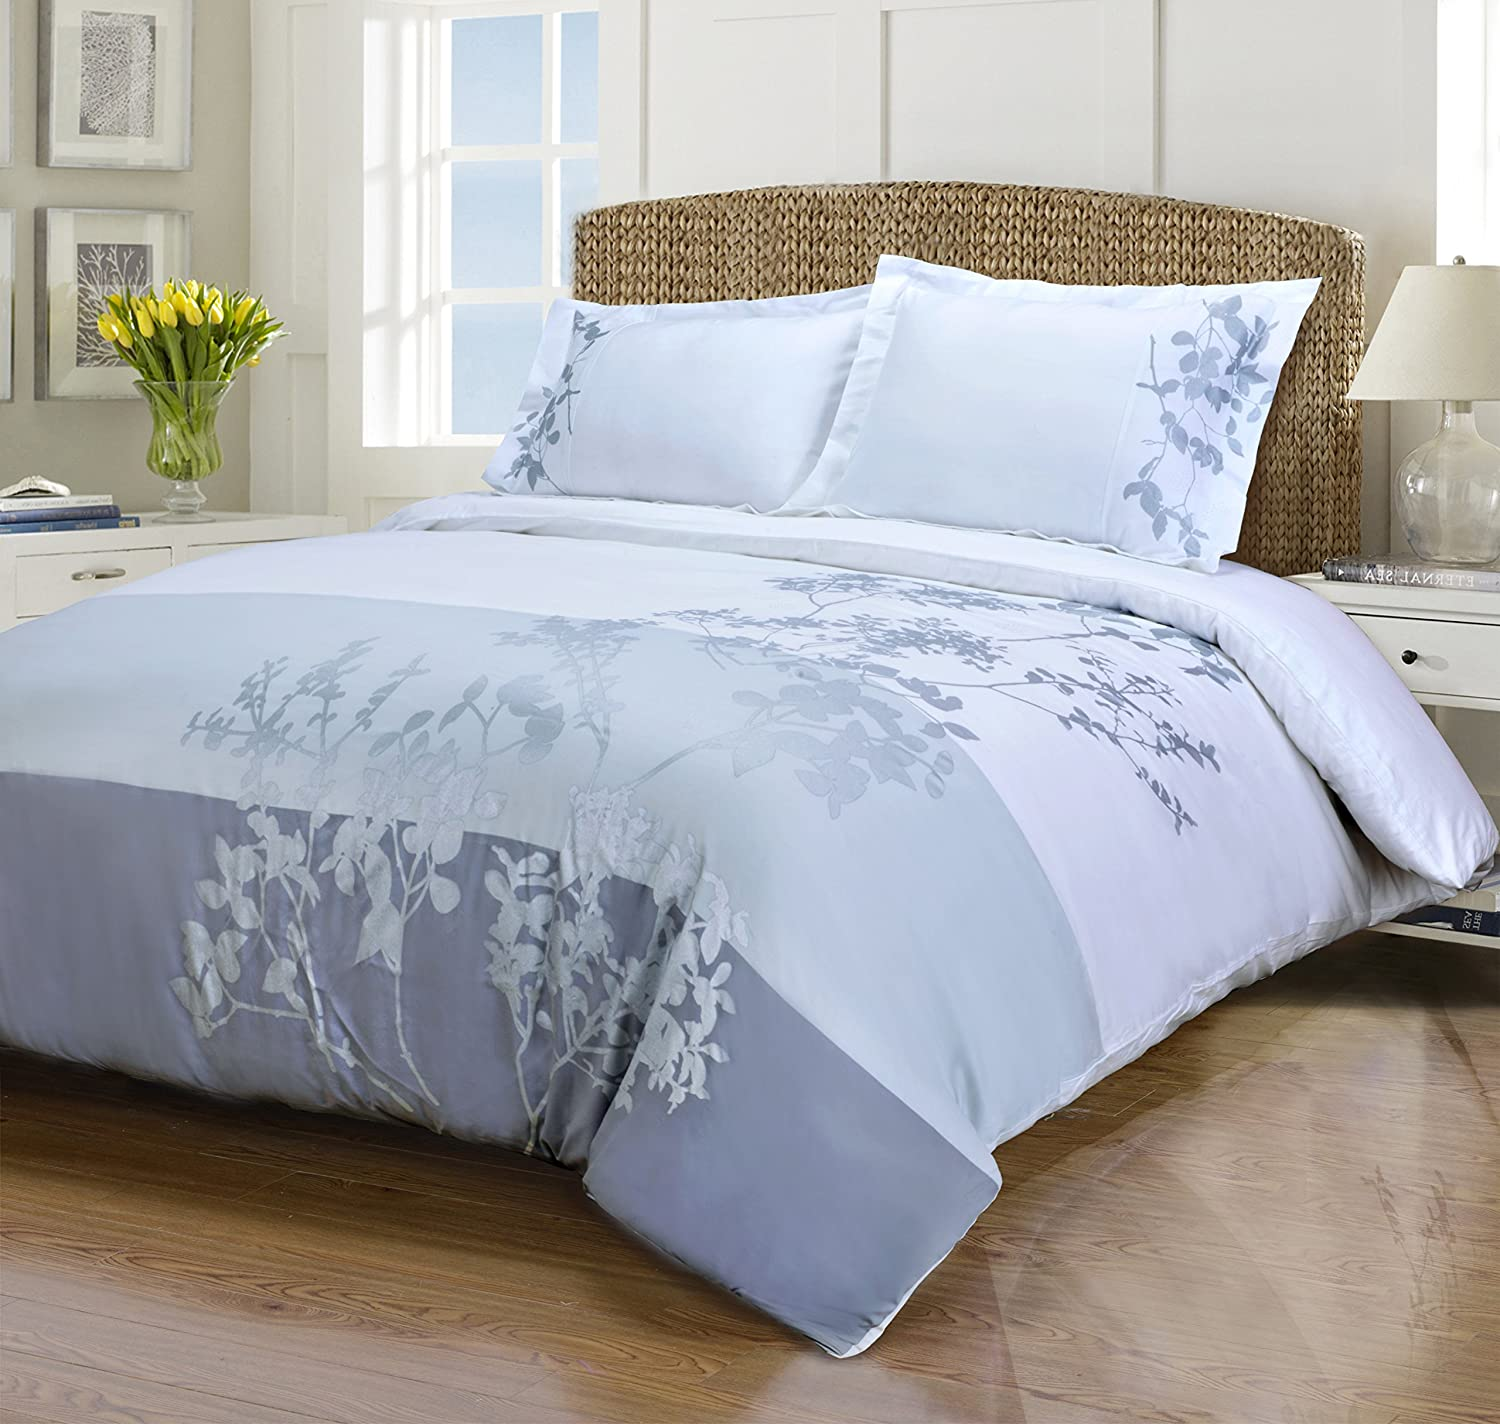 SUPERIOR Finally resale start 100% Cotton Duvet Cover Set Hotel Soft C - Embroidered Ranking TOP11